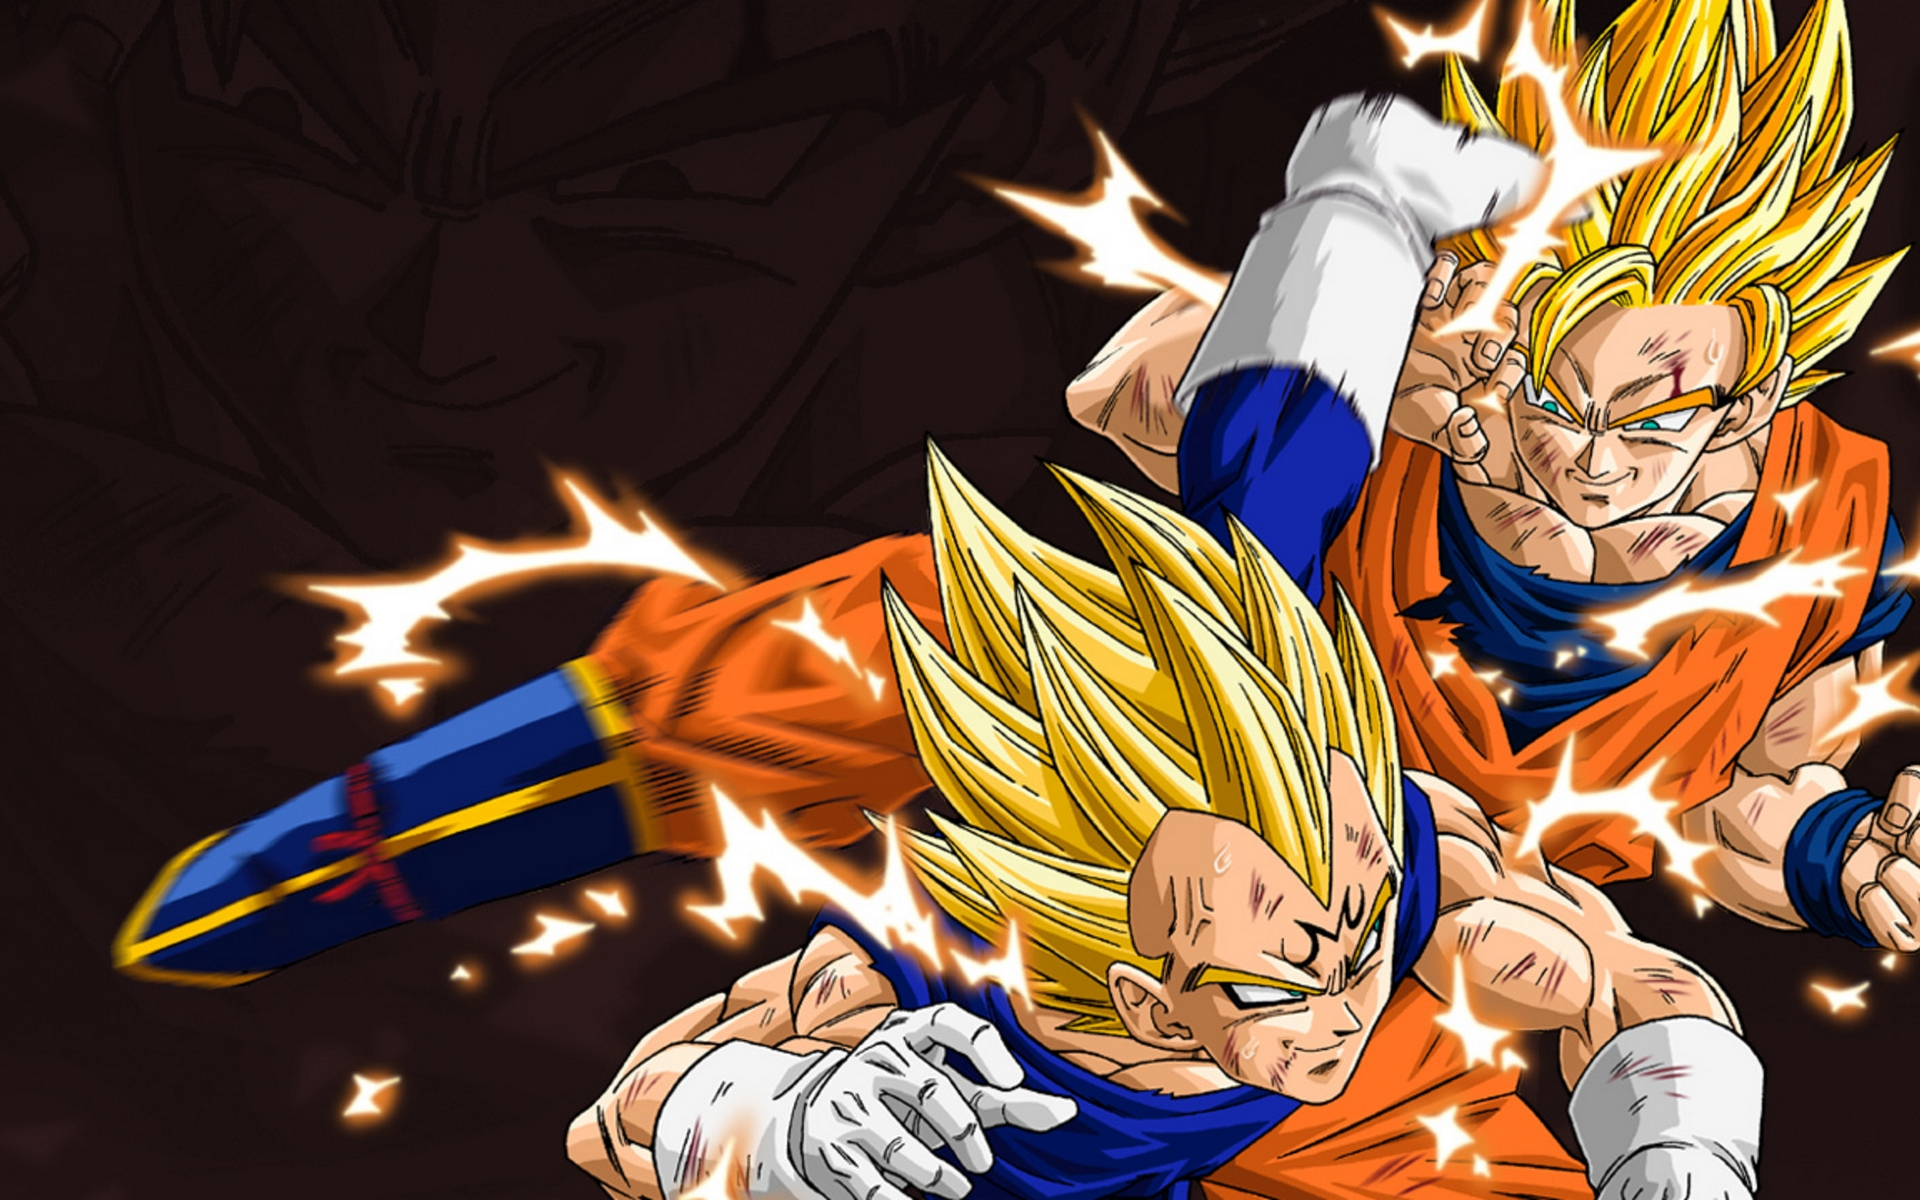 Dragon ball z 1080p wallpaper wallpapersafari - Images dragon ball z ...